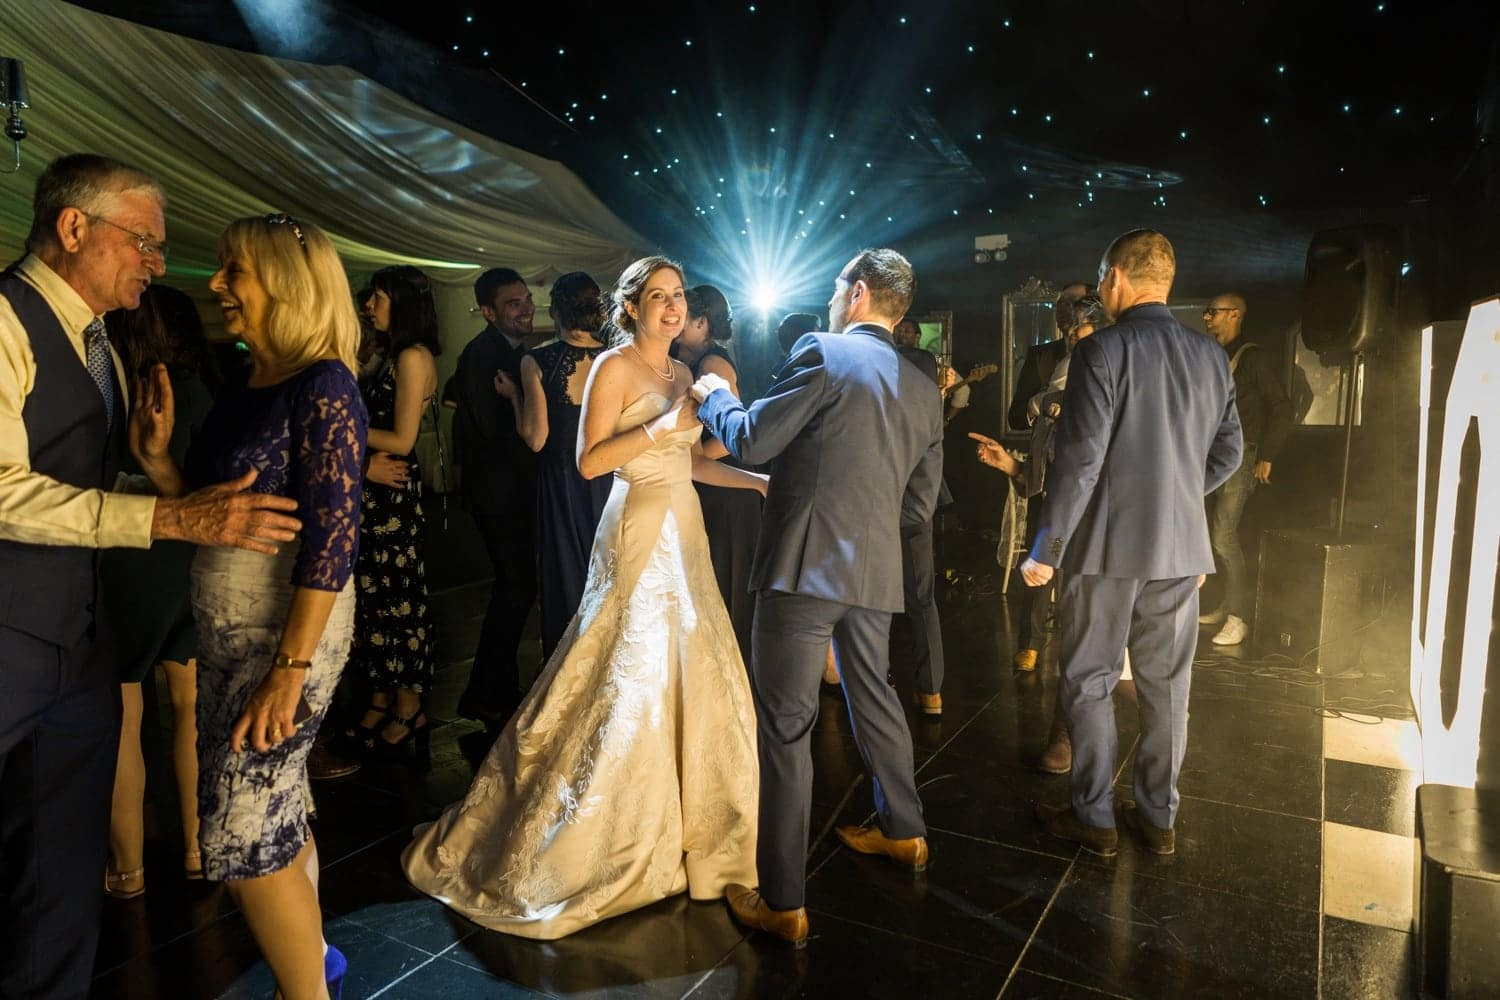 South Wales Wedding Photography at Oldwalls - Kate & James 10